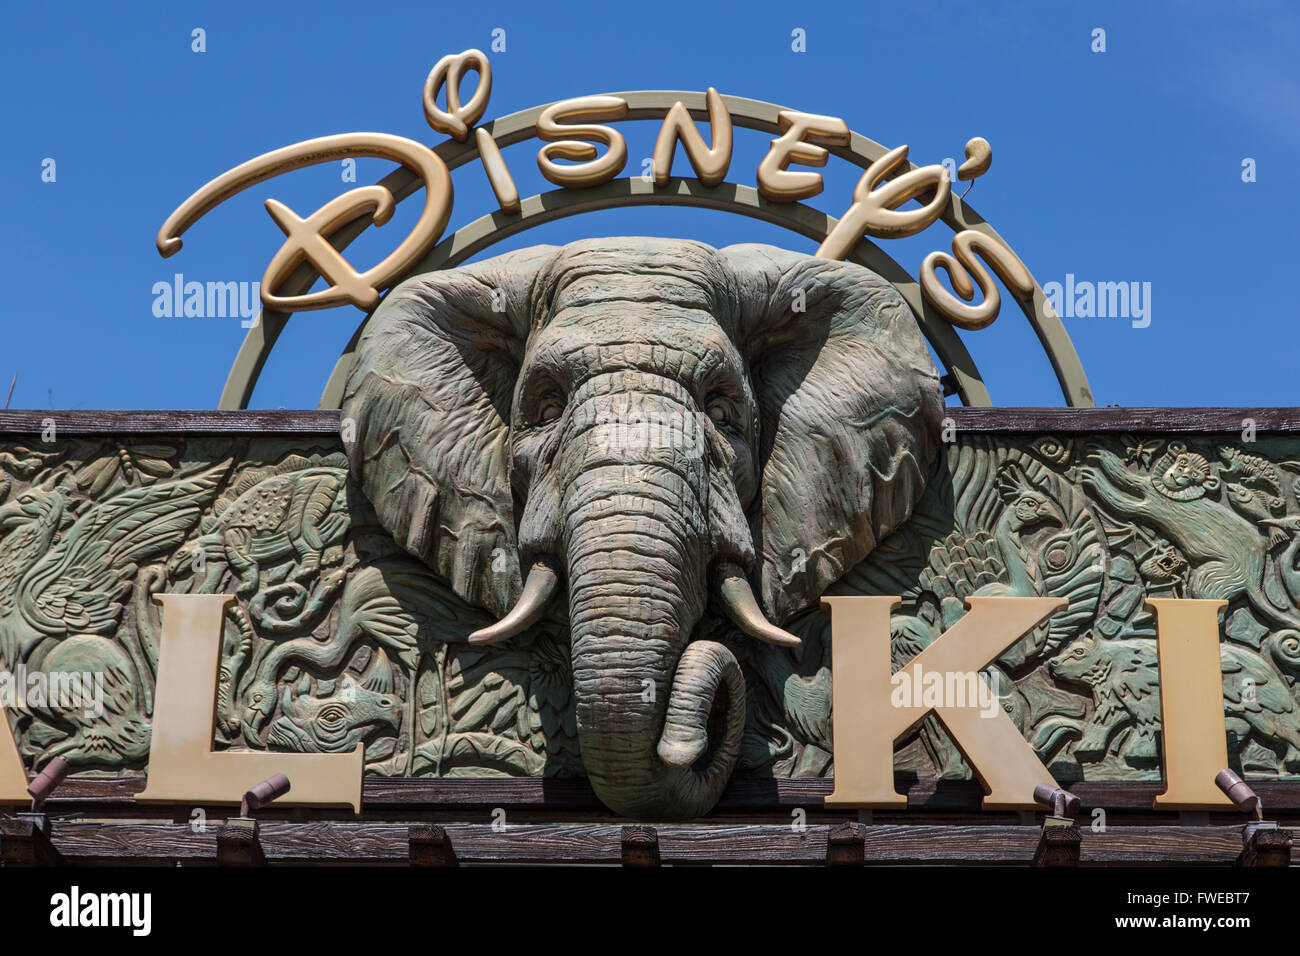 Animal Kingdom Entrance - Stock Image